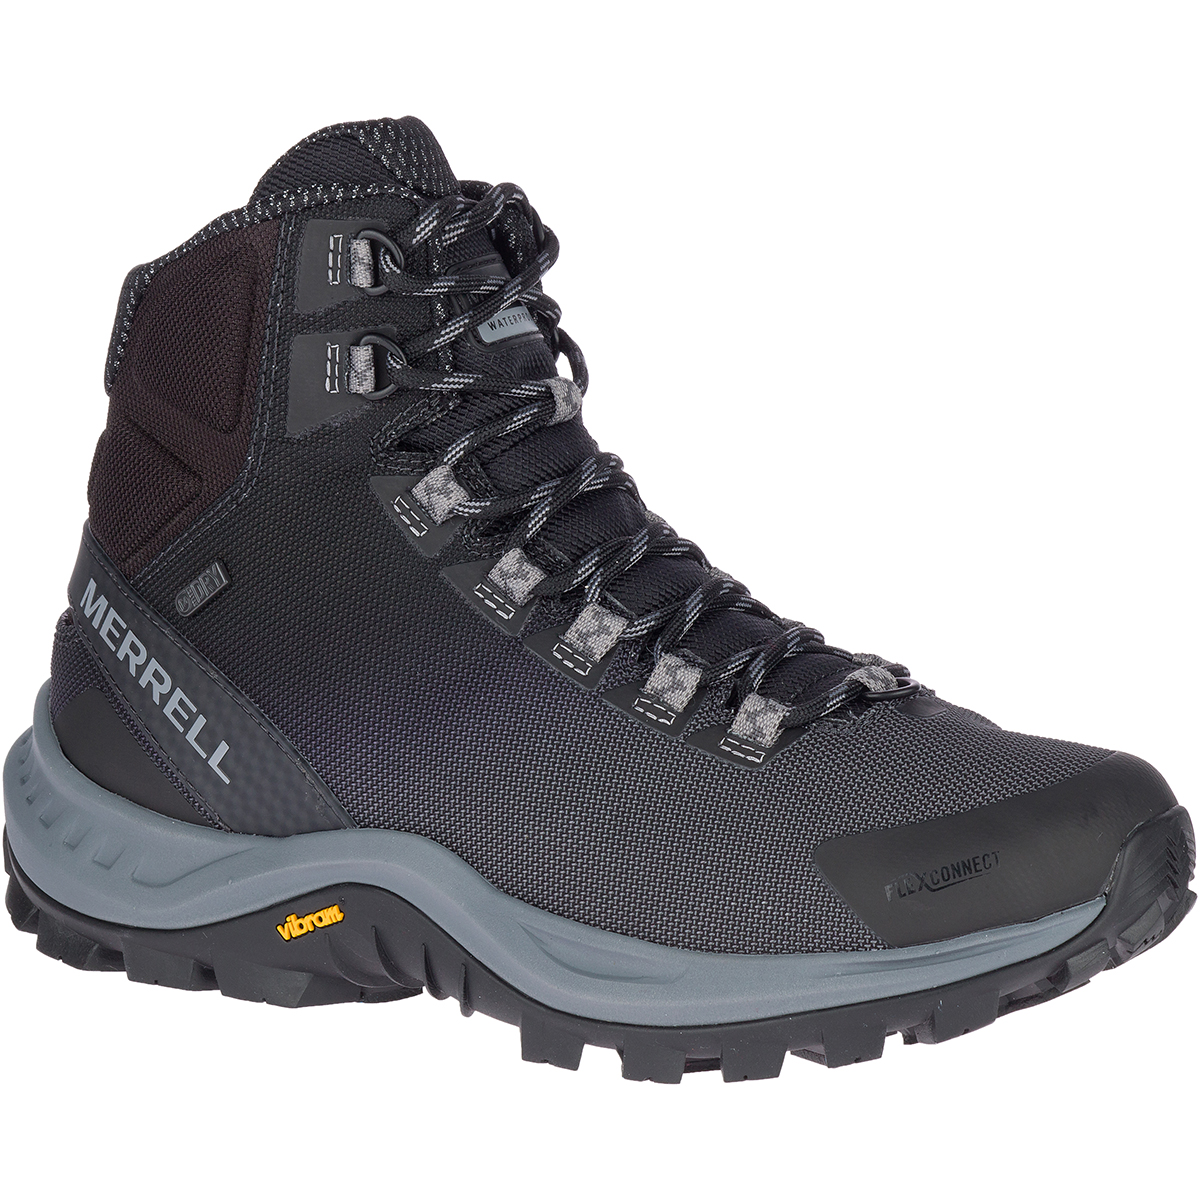 Merrrel Men's Thermo Cross Waterproof Hiking Boot - Black, 9